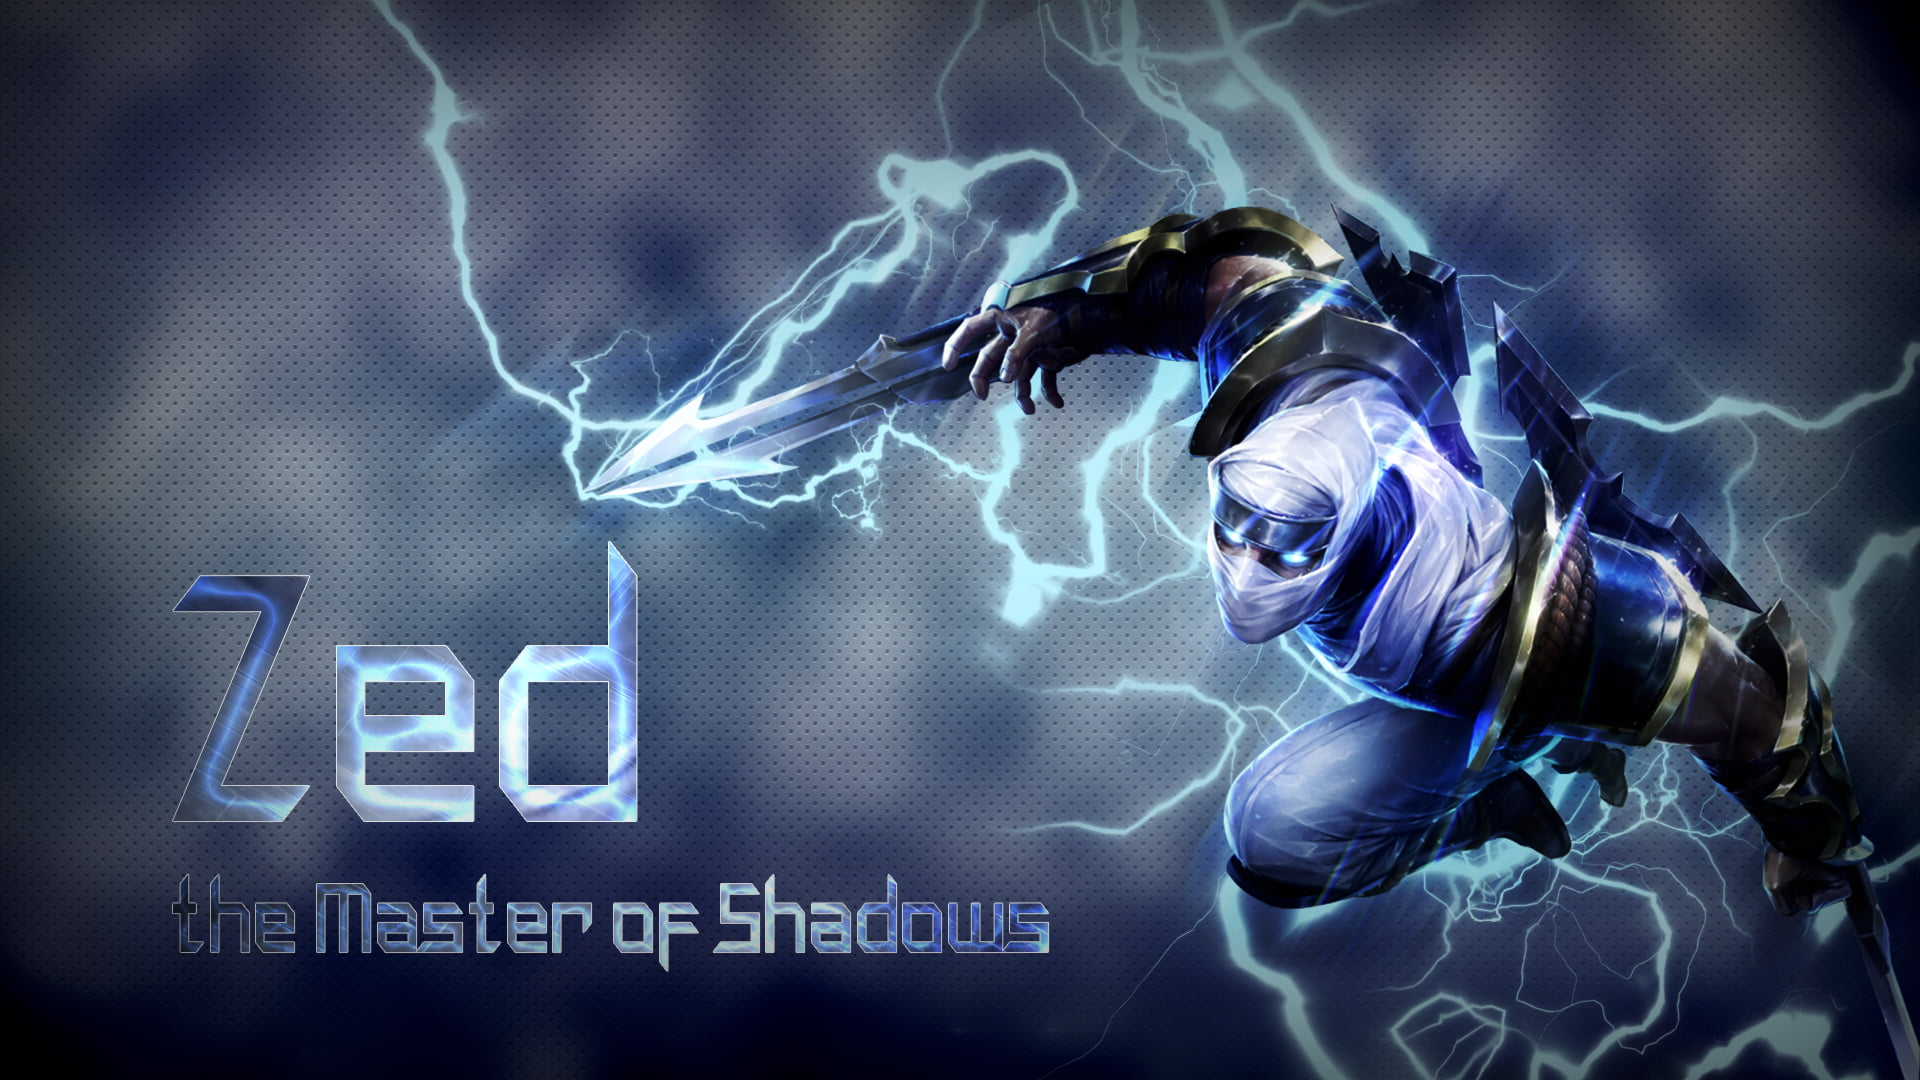 Zed The Master Of Shadows Wallpaper Zed Video Games League Of